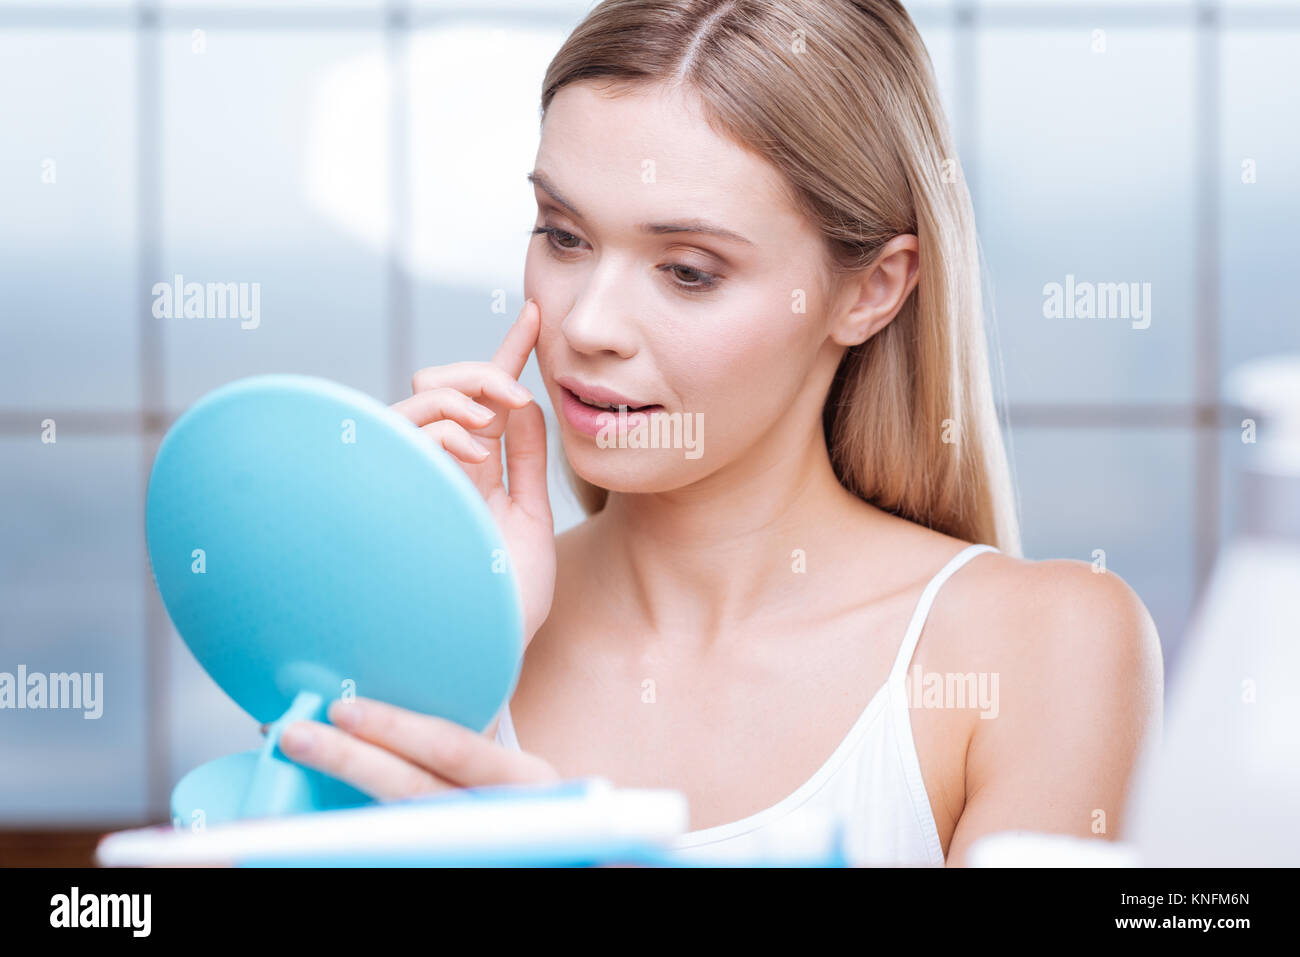 Pretty young woman touching skin on her cheek - Stock Image